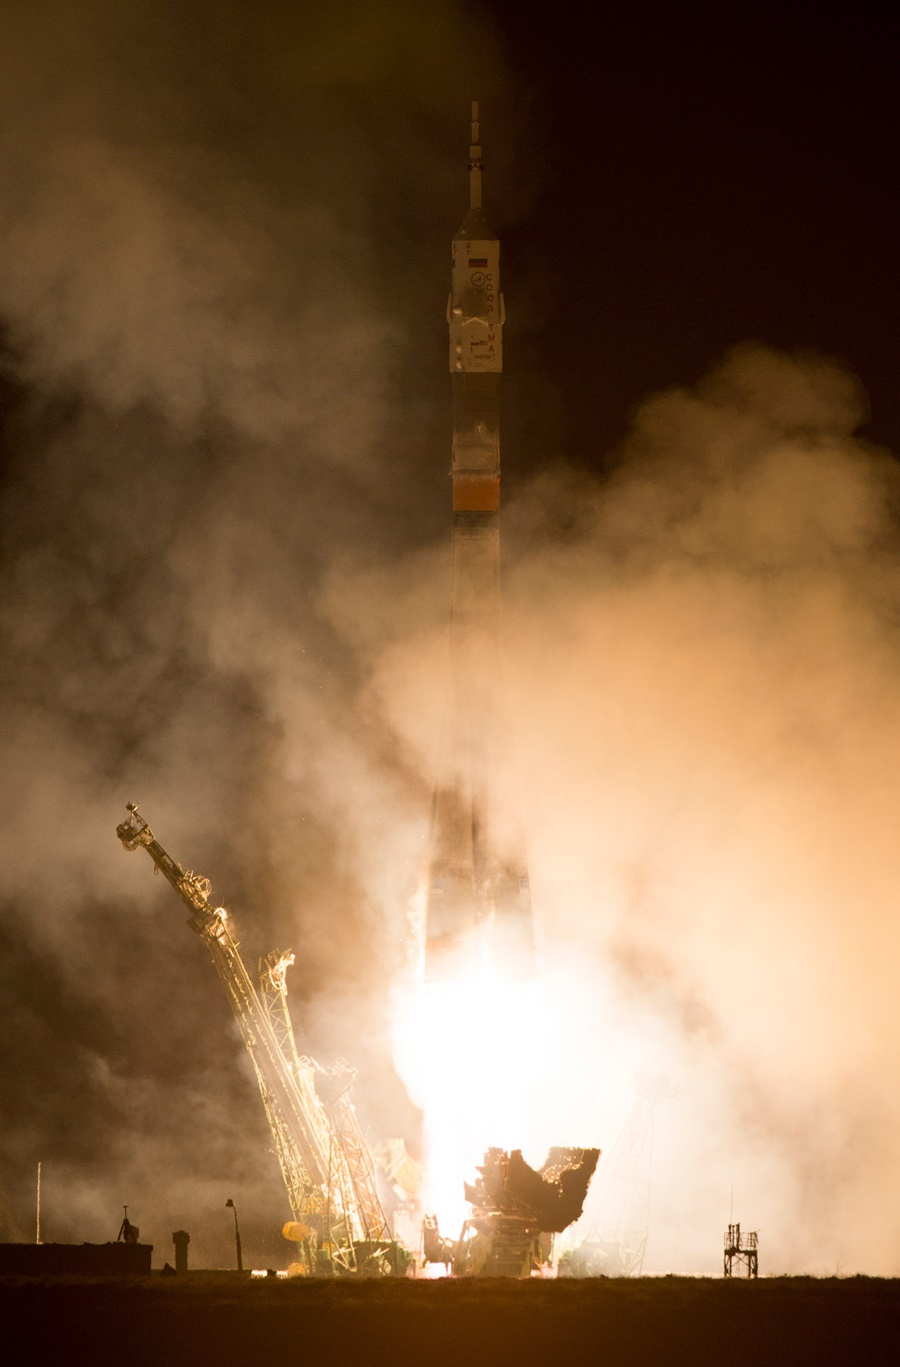 Space expedition 39: The launch of Russian rocket Soyuz TMA12M - 14